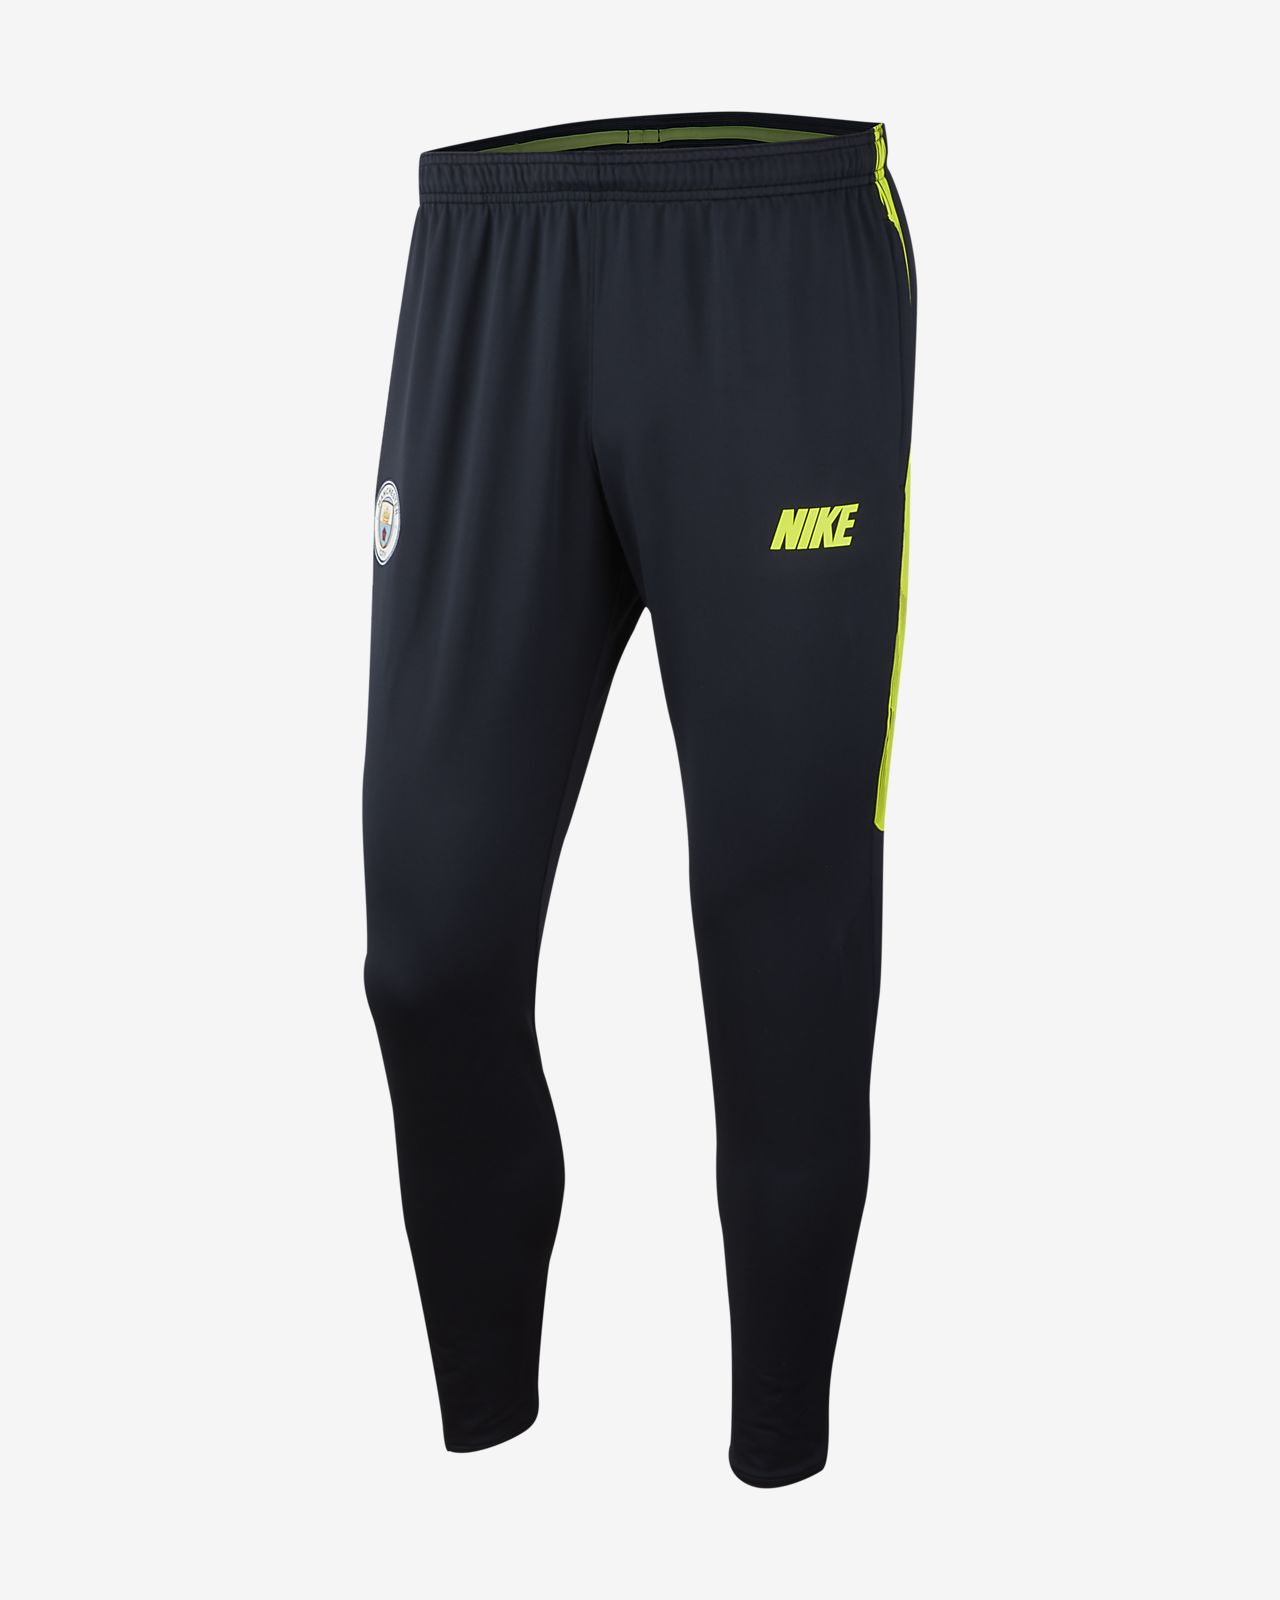 30fe40a9d4327 Manchester City FC Dri-FIT Squad Men's Football Pants. Nike.com NL